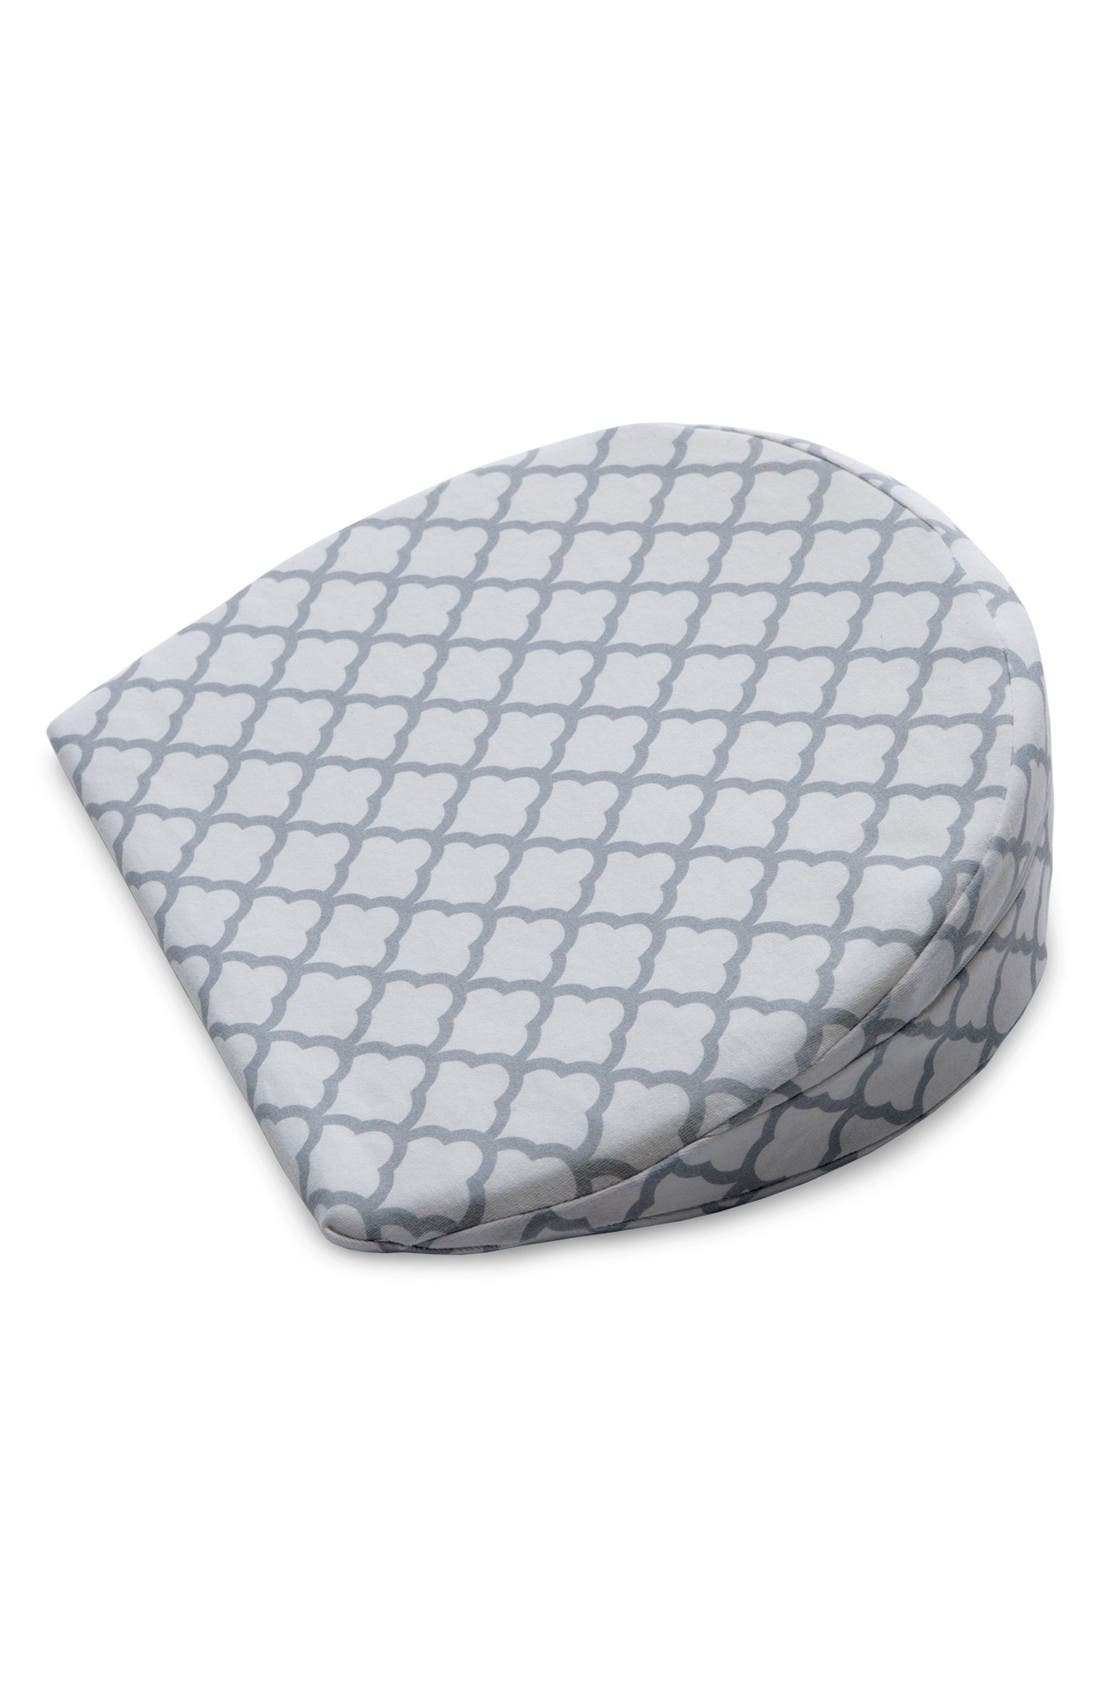 Main Image - Boppy Pregnancy Wedge Cushion & Slipcover